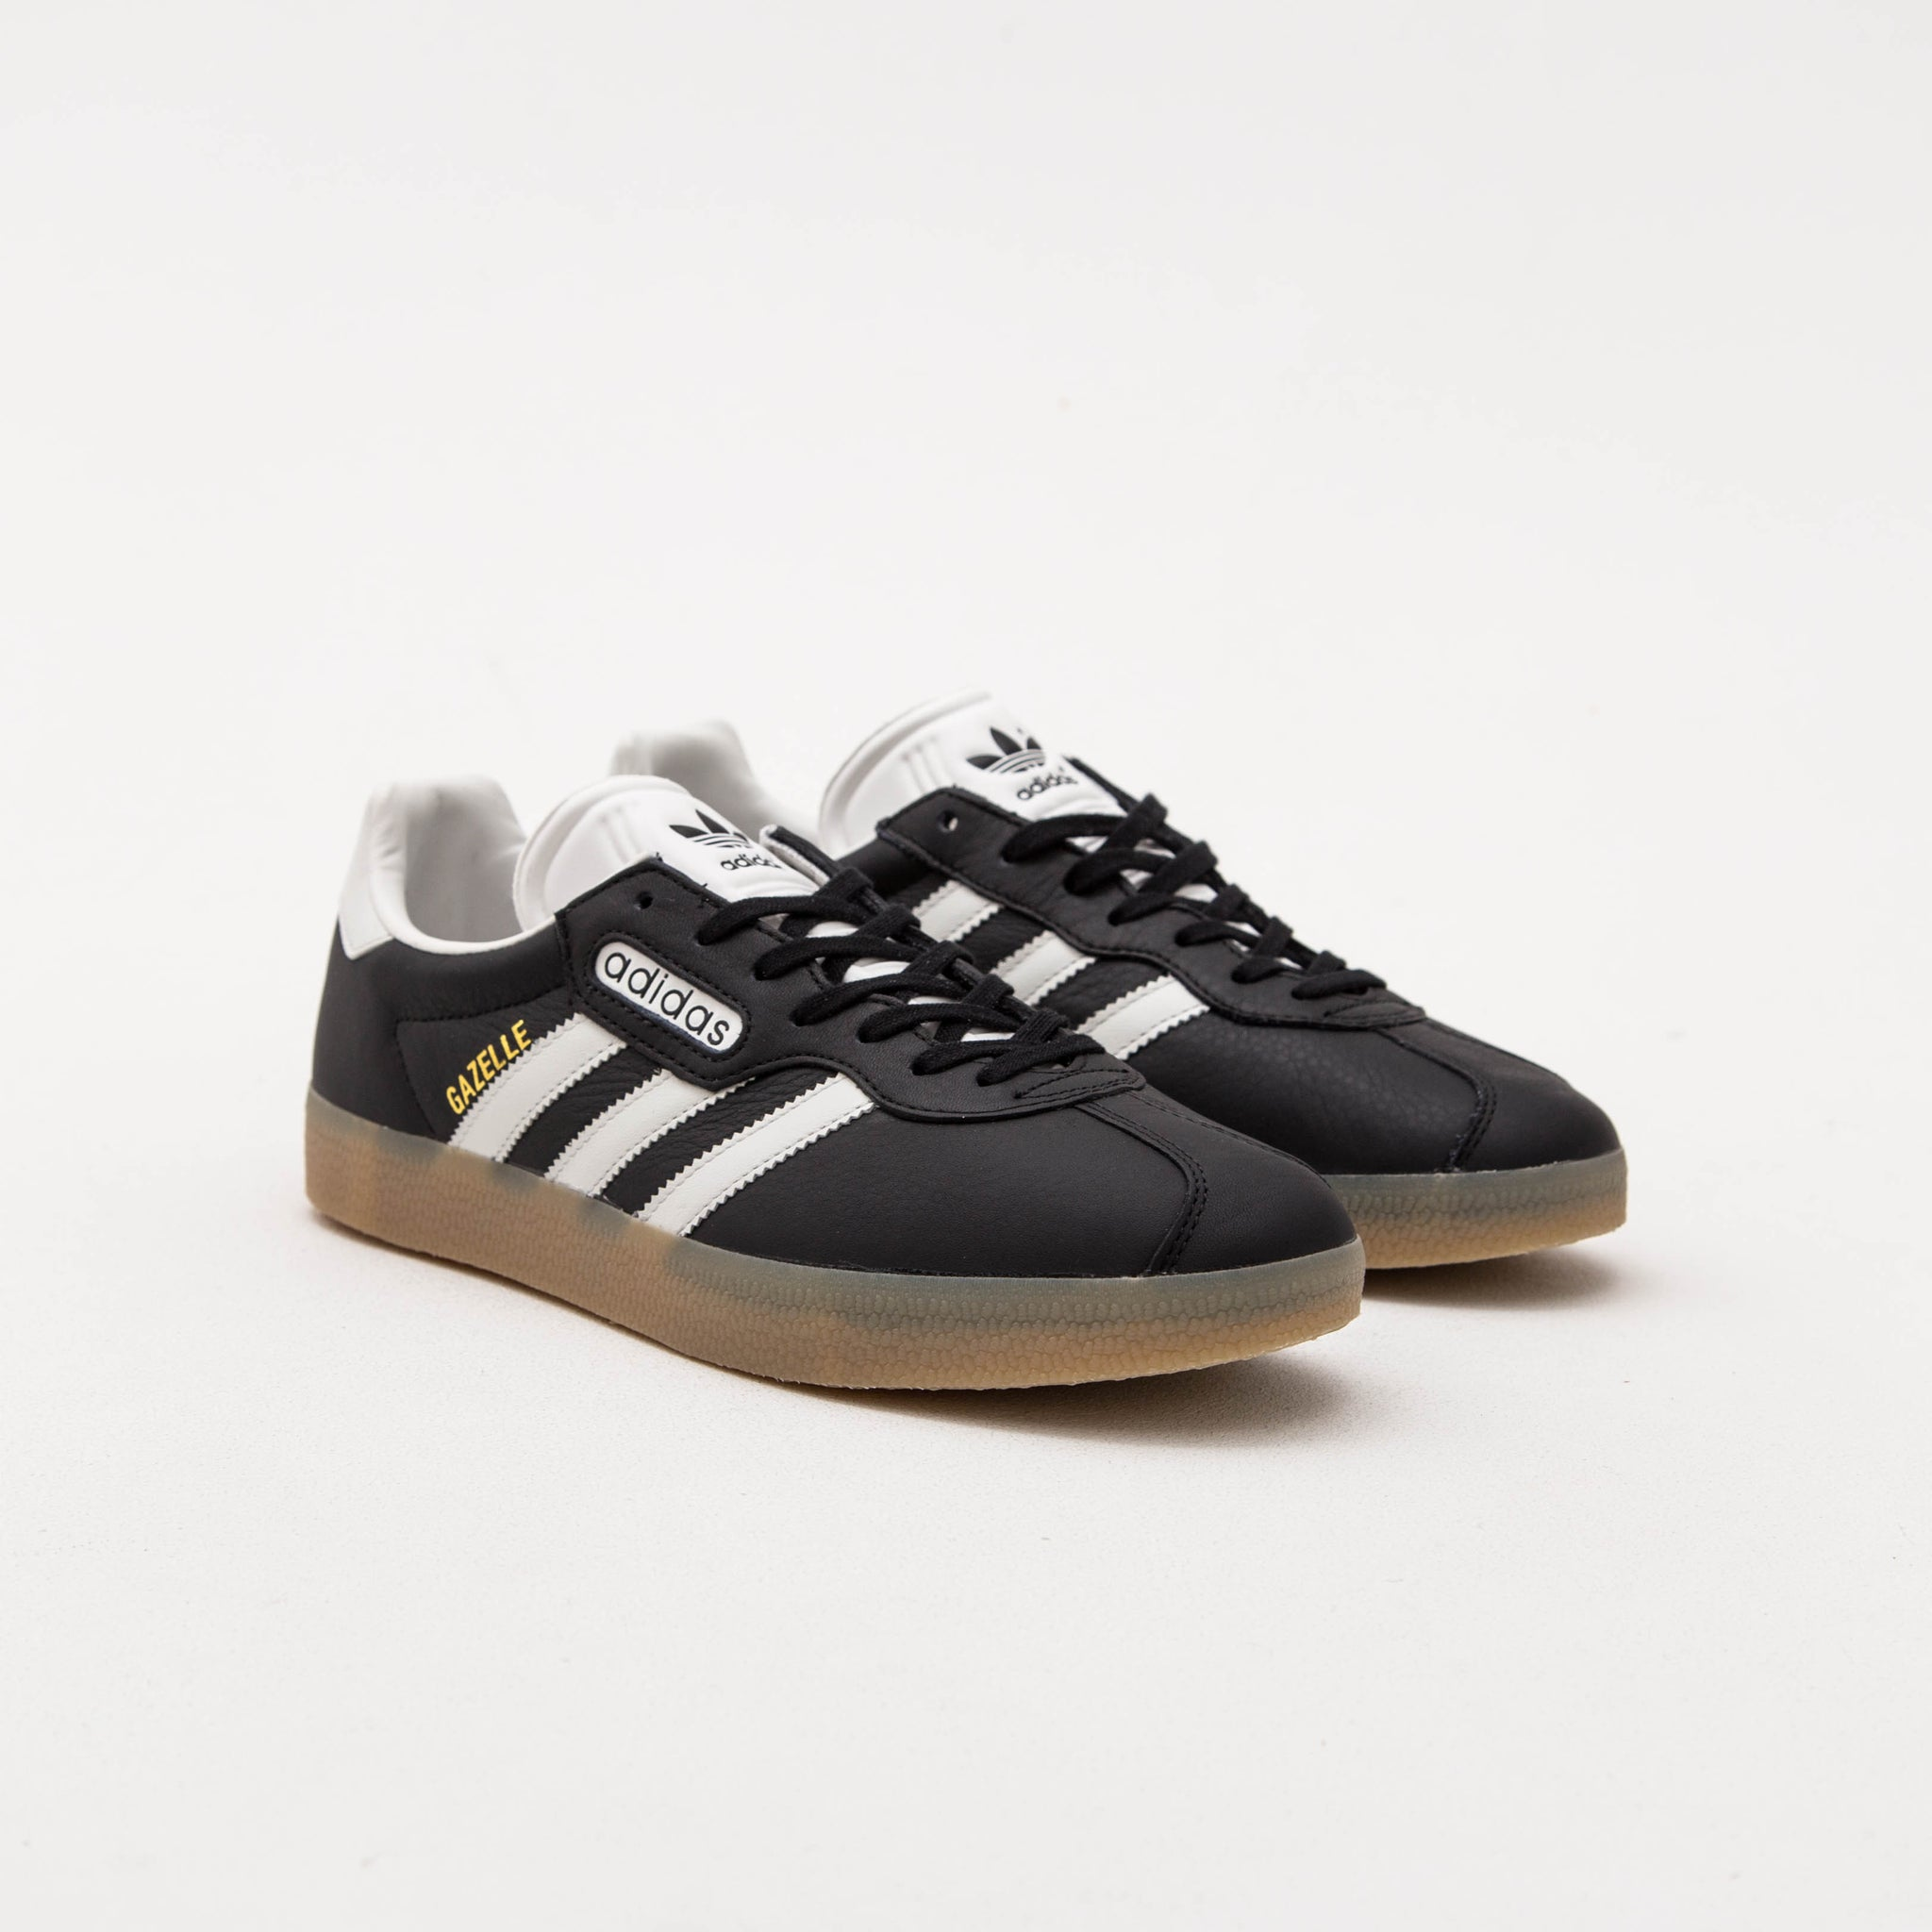 adidas Gazelle Super Sneakers - Core Black / Vintage White BB5244 | AStore